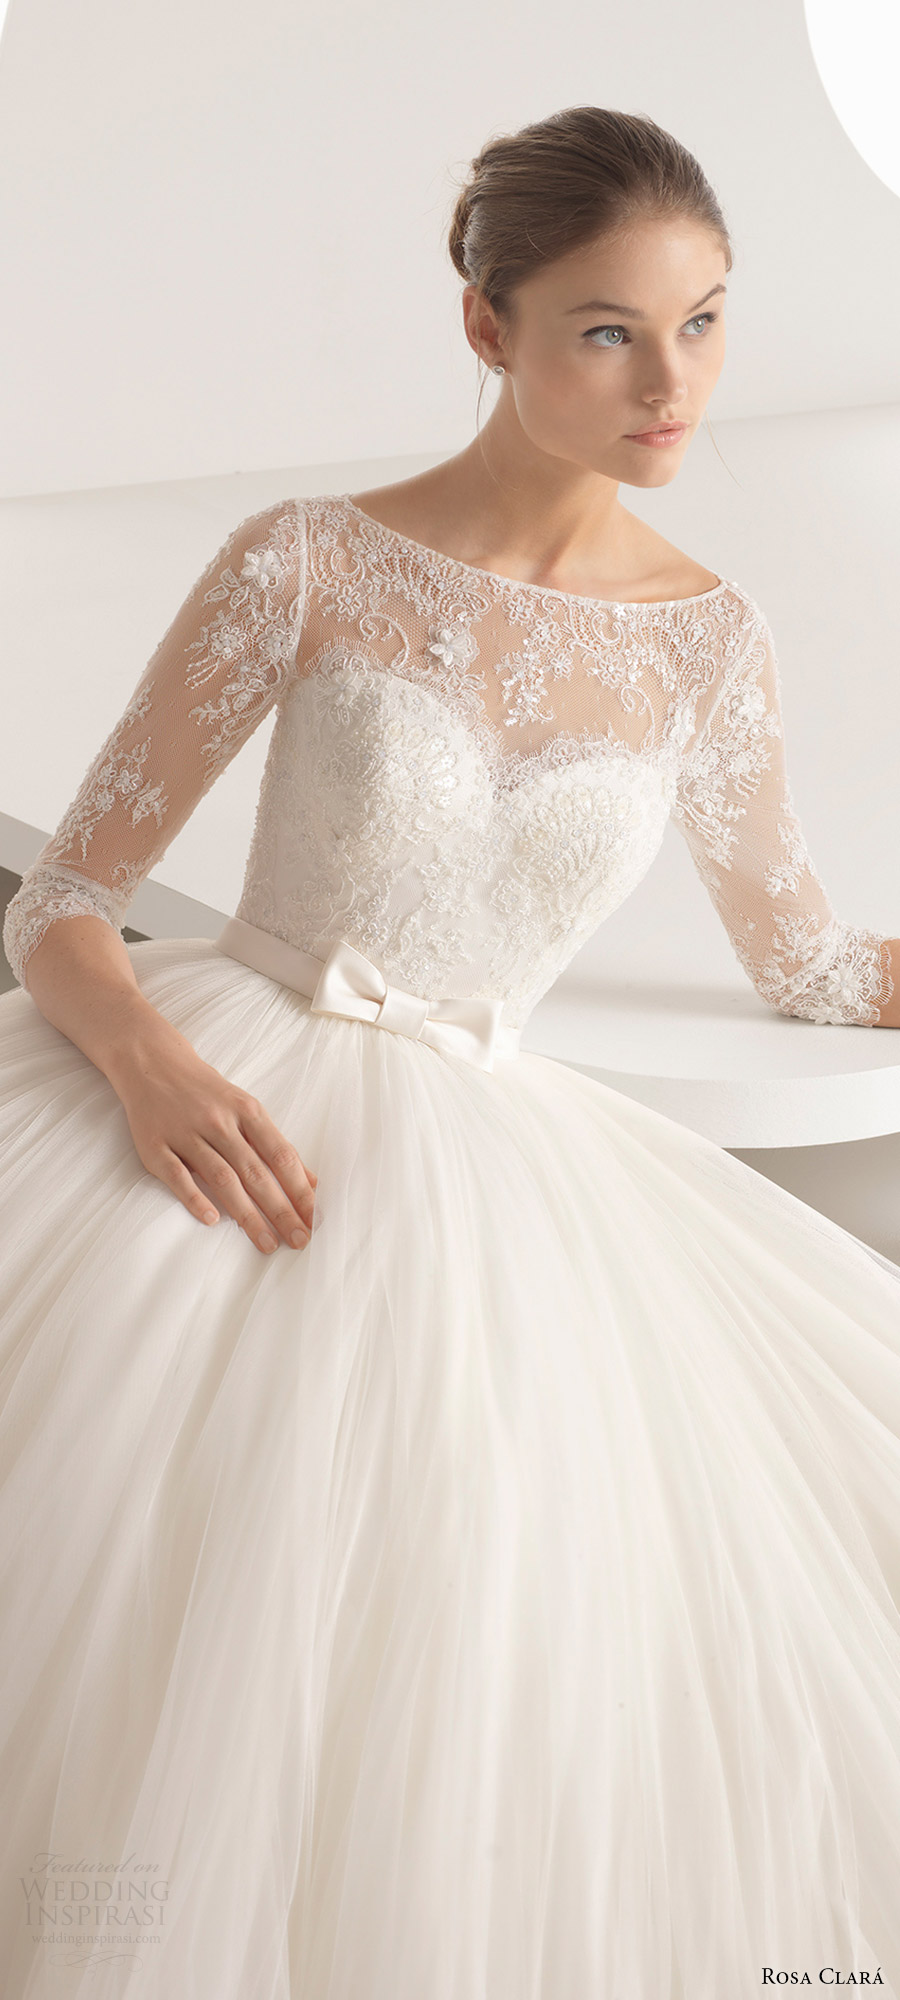 2018 Wedding Dress Trends to Love Part 2 — Necklines and Other ...